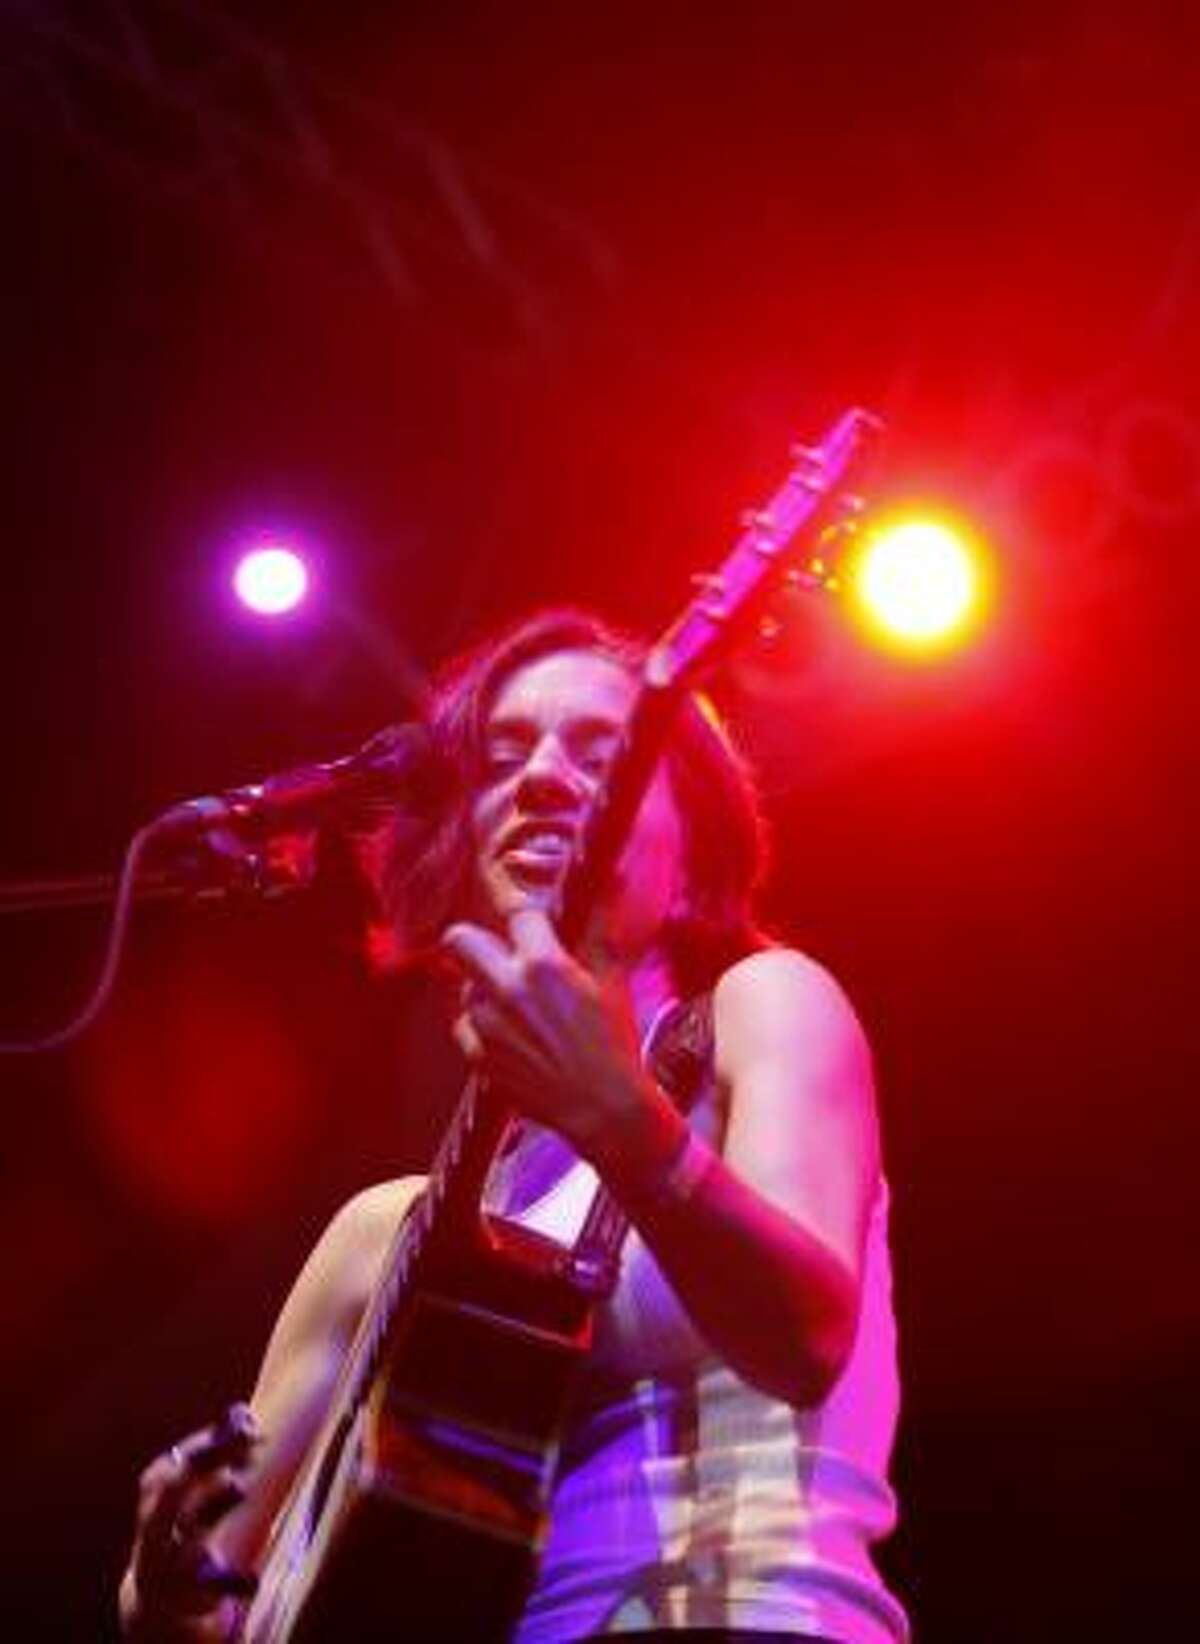 Ani DiFranco performs at the New Orleans concert on Sunday raising money for fishermen affected by the oil spill.